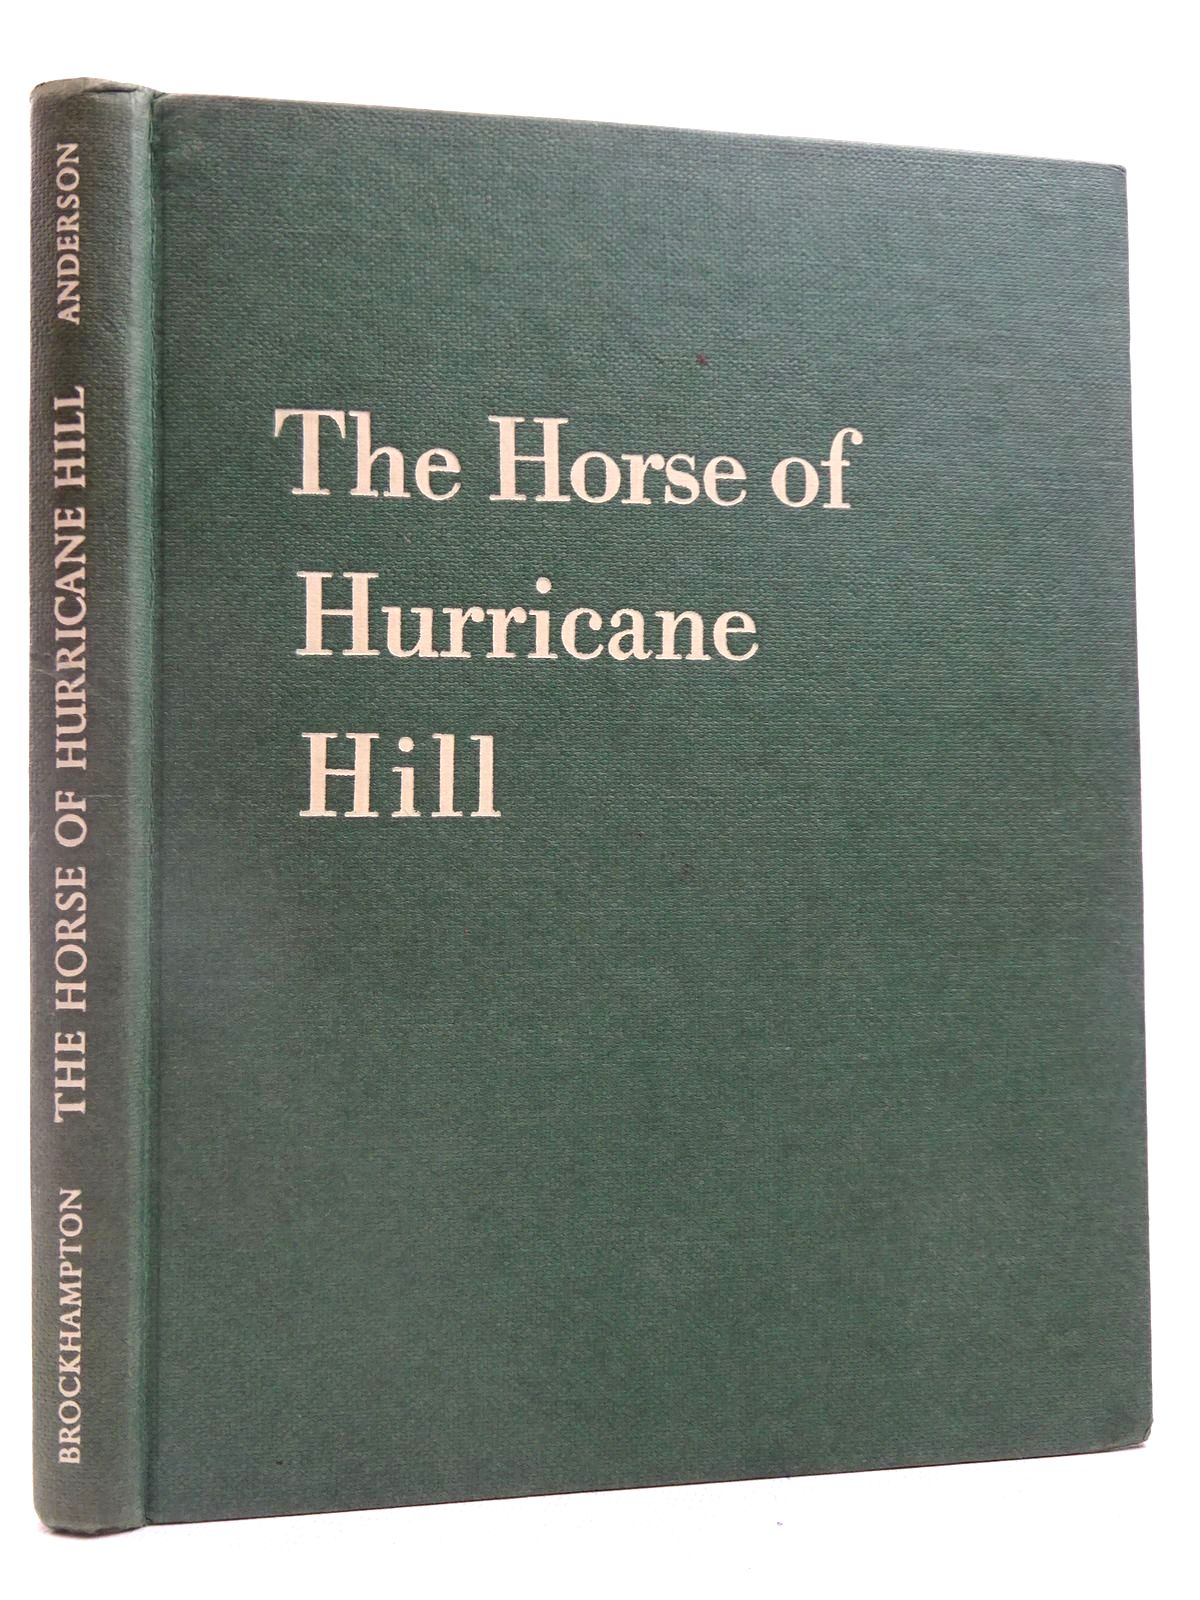 Photo of THE HORSE OF HURRICANE HILL written by Anderson, C.W. illustrated by Anderson, C.W. published by Brockhampton Press (STOCK CODE: 2128099)  for sale by Stella & Rose's Books